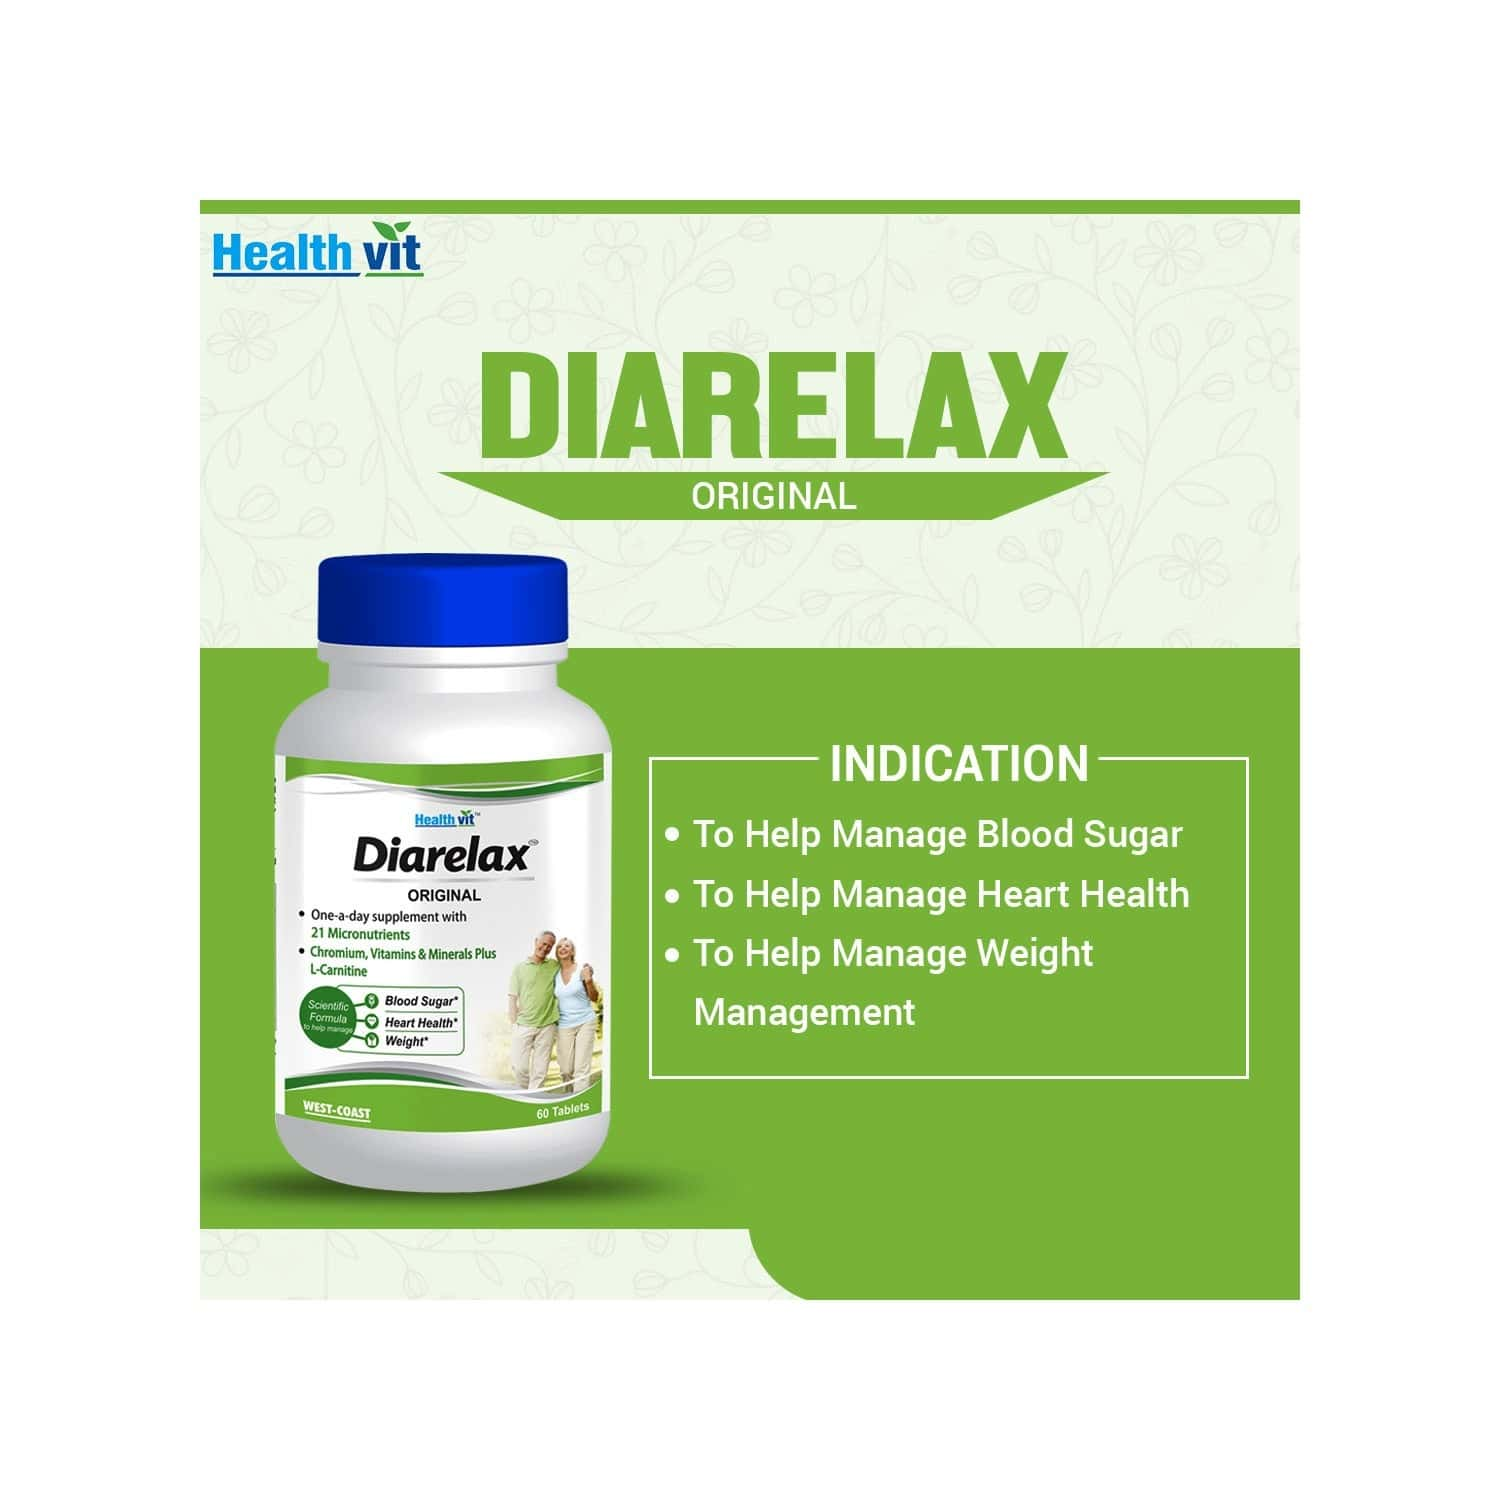 Healthvit Diarelax Diabetes Care Supplement Supports Healthy Blood Glucose Levels - 60 Tablets